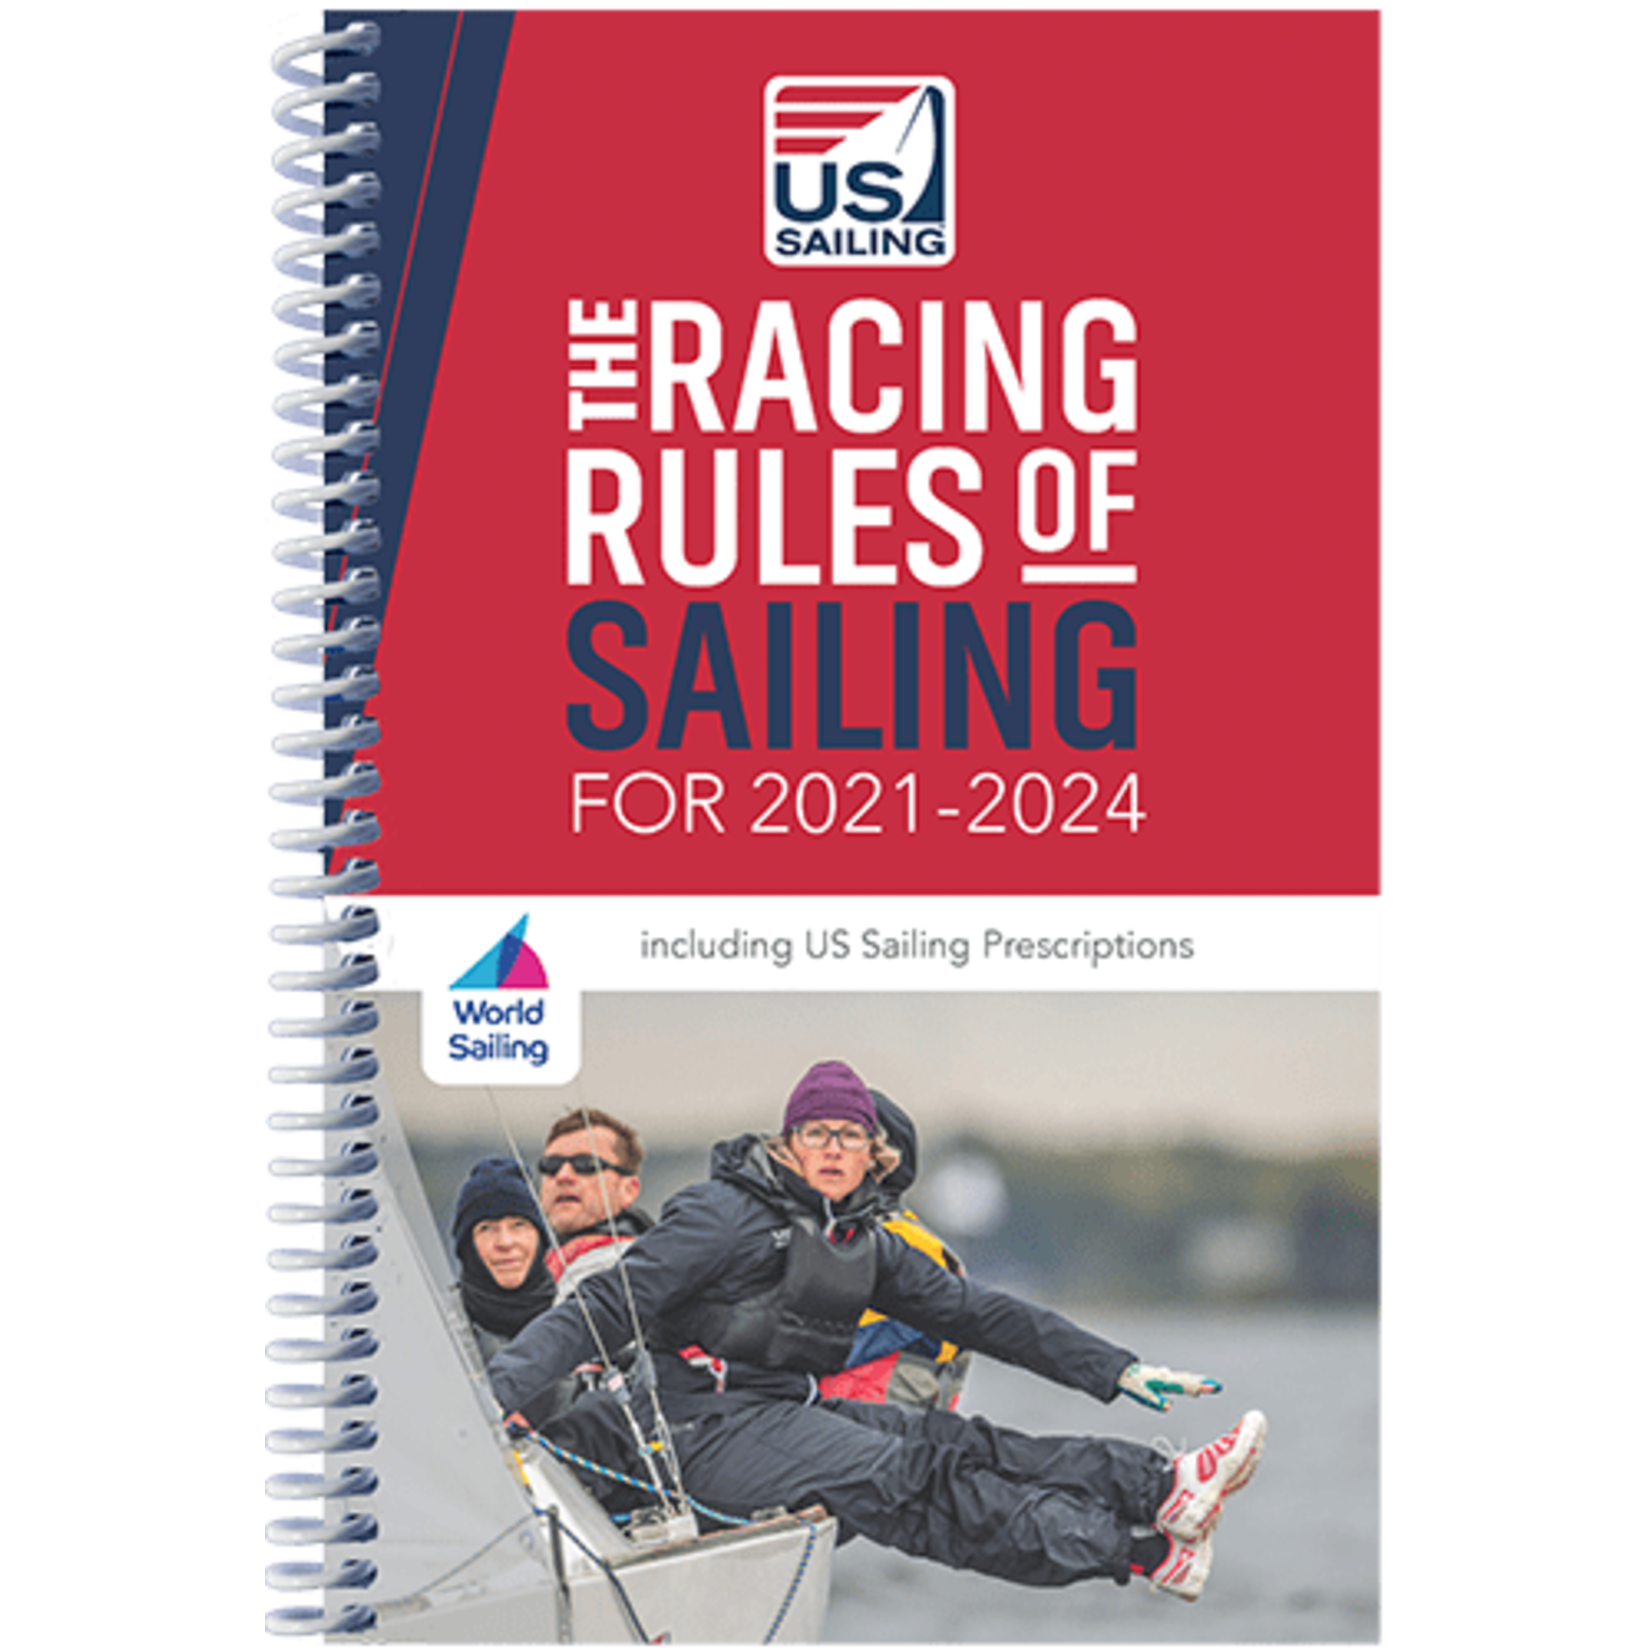 TEXT The Racing Rules of Sailing for 2021-2024 Waterproof Edition